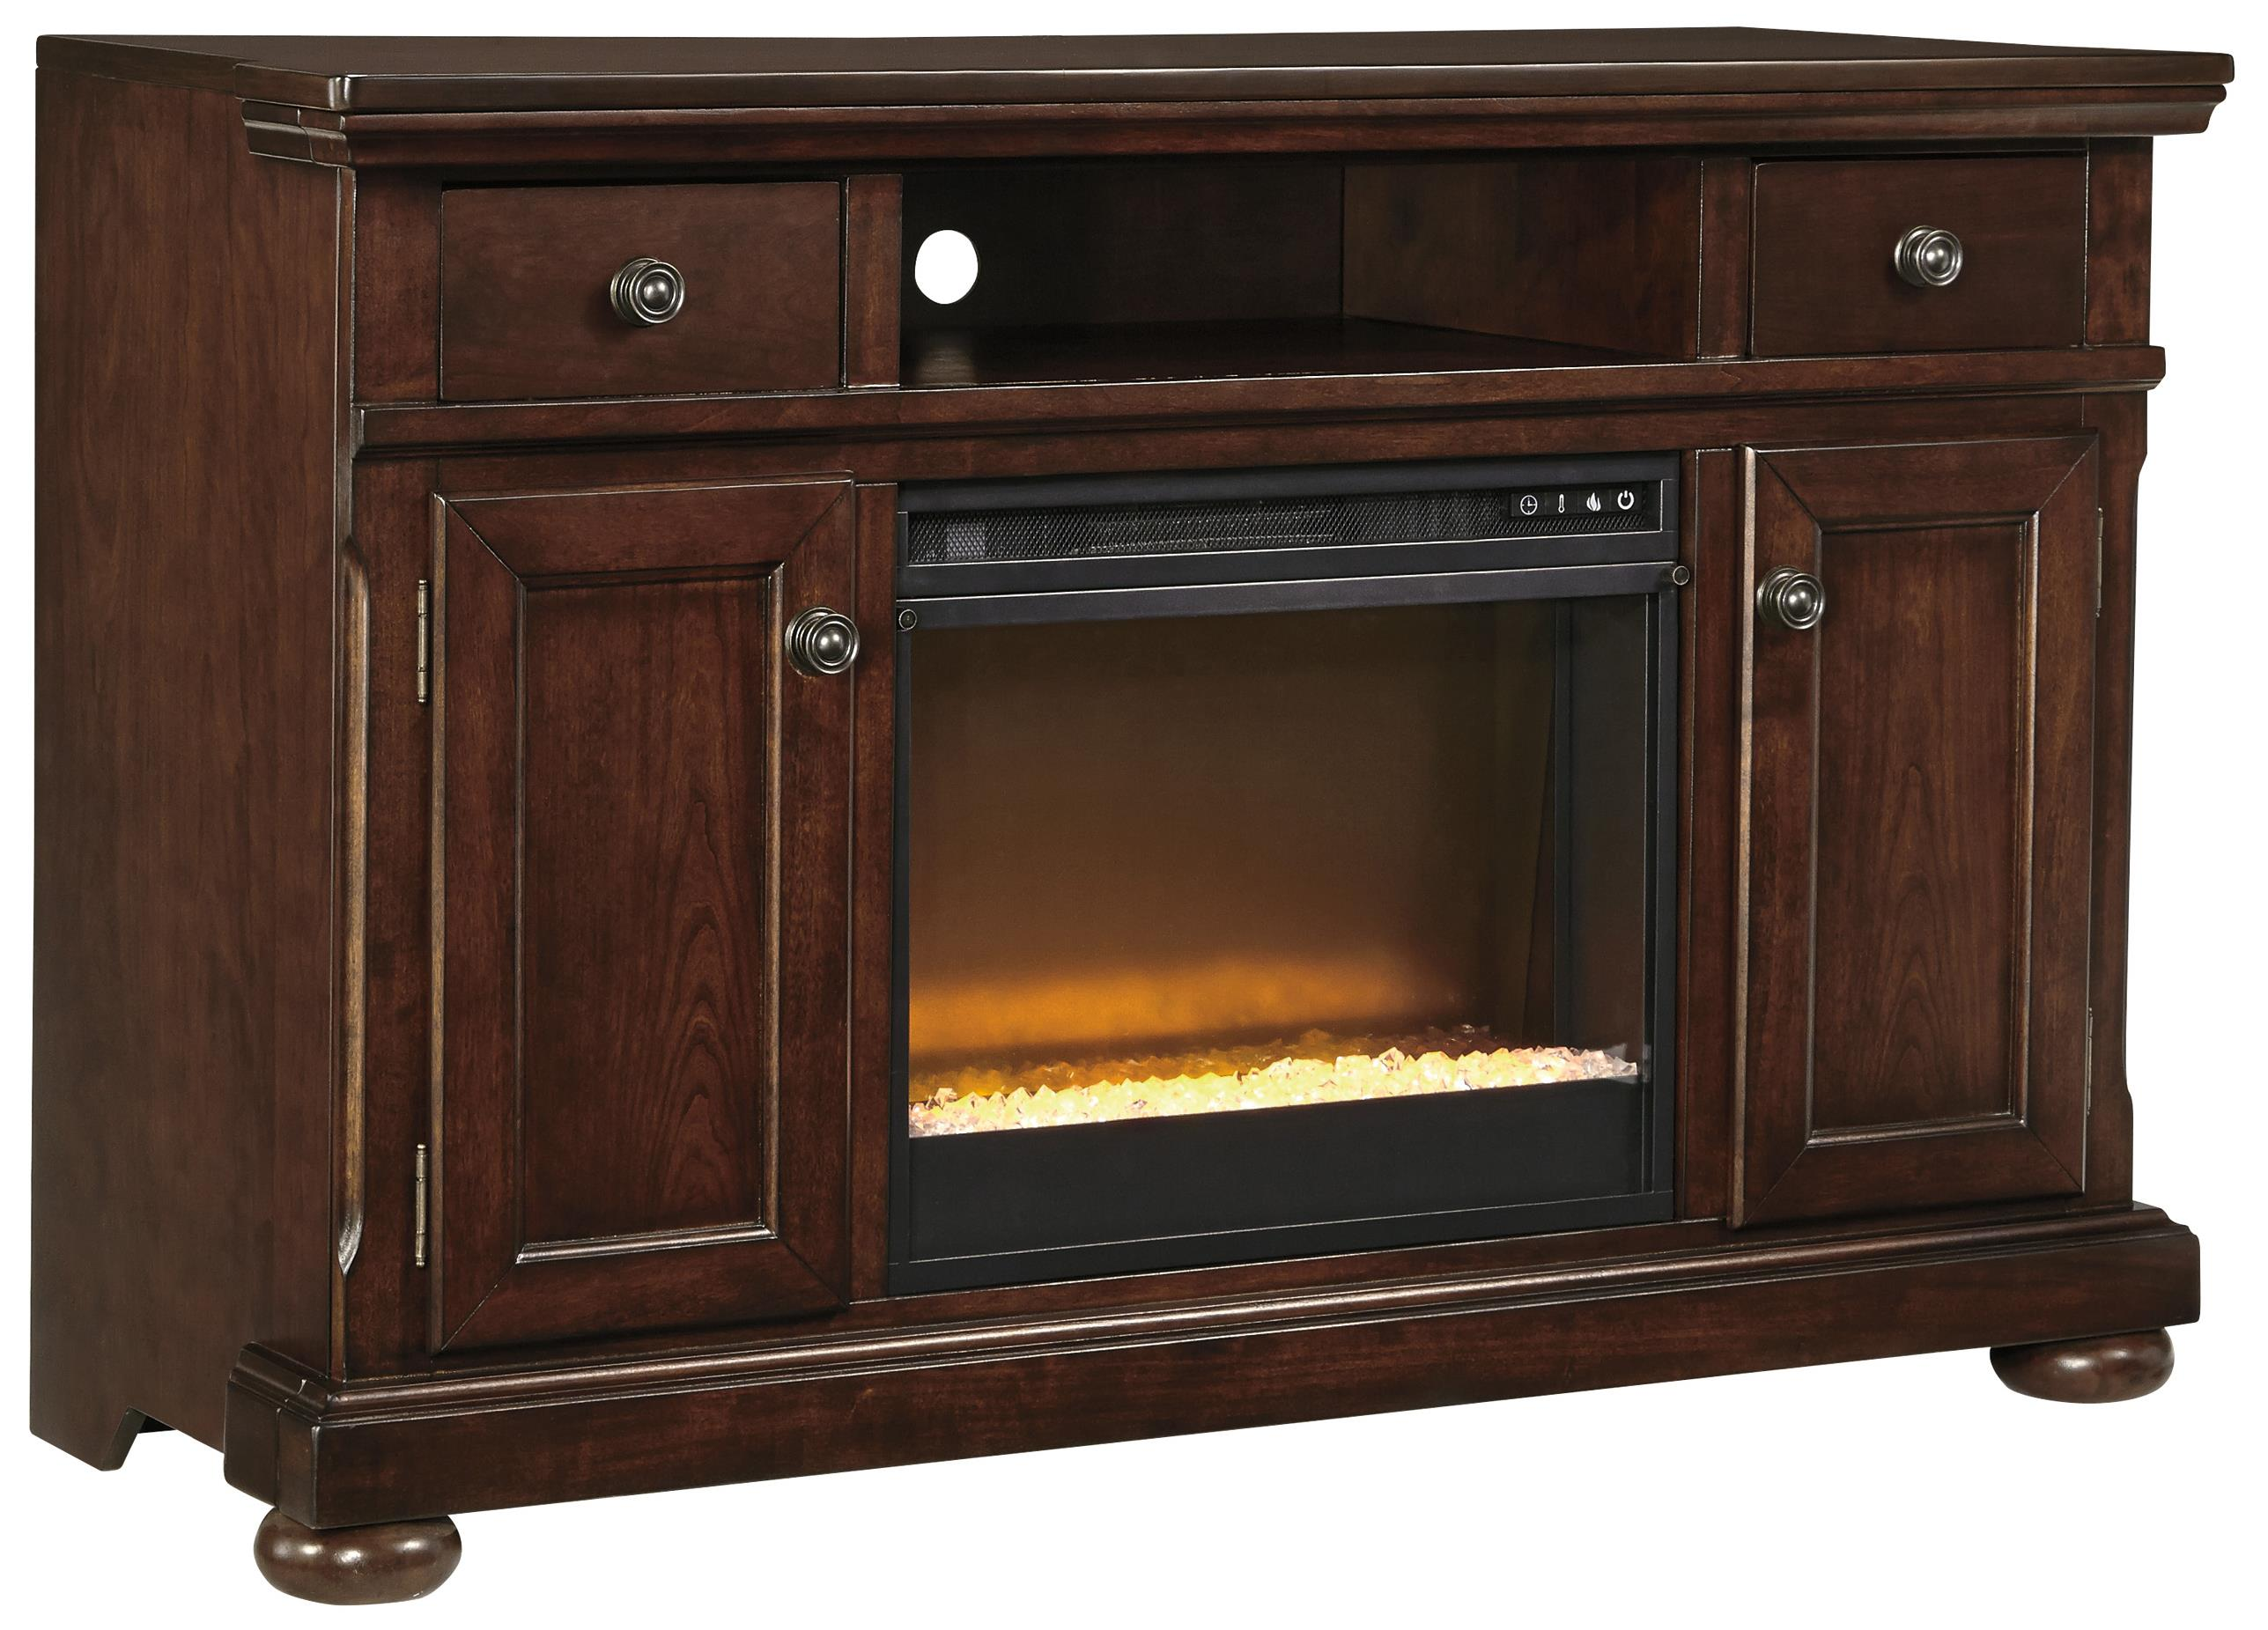 Millennium Porter Large TV Stand with Fireplace Insert - Item Number: W697-120+W100-02